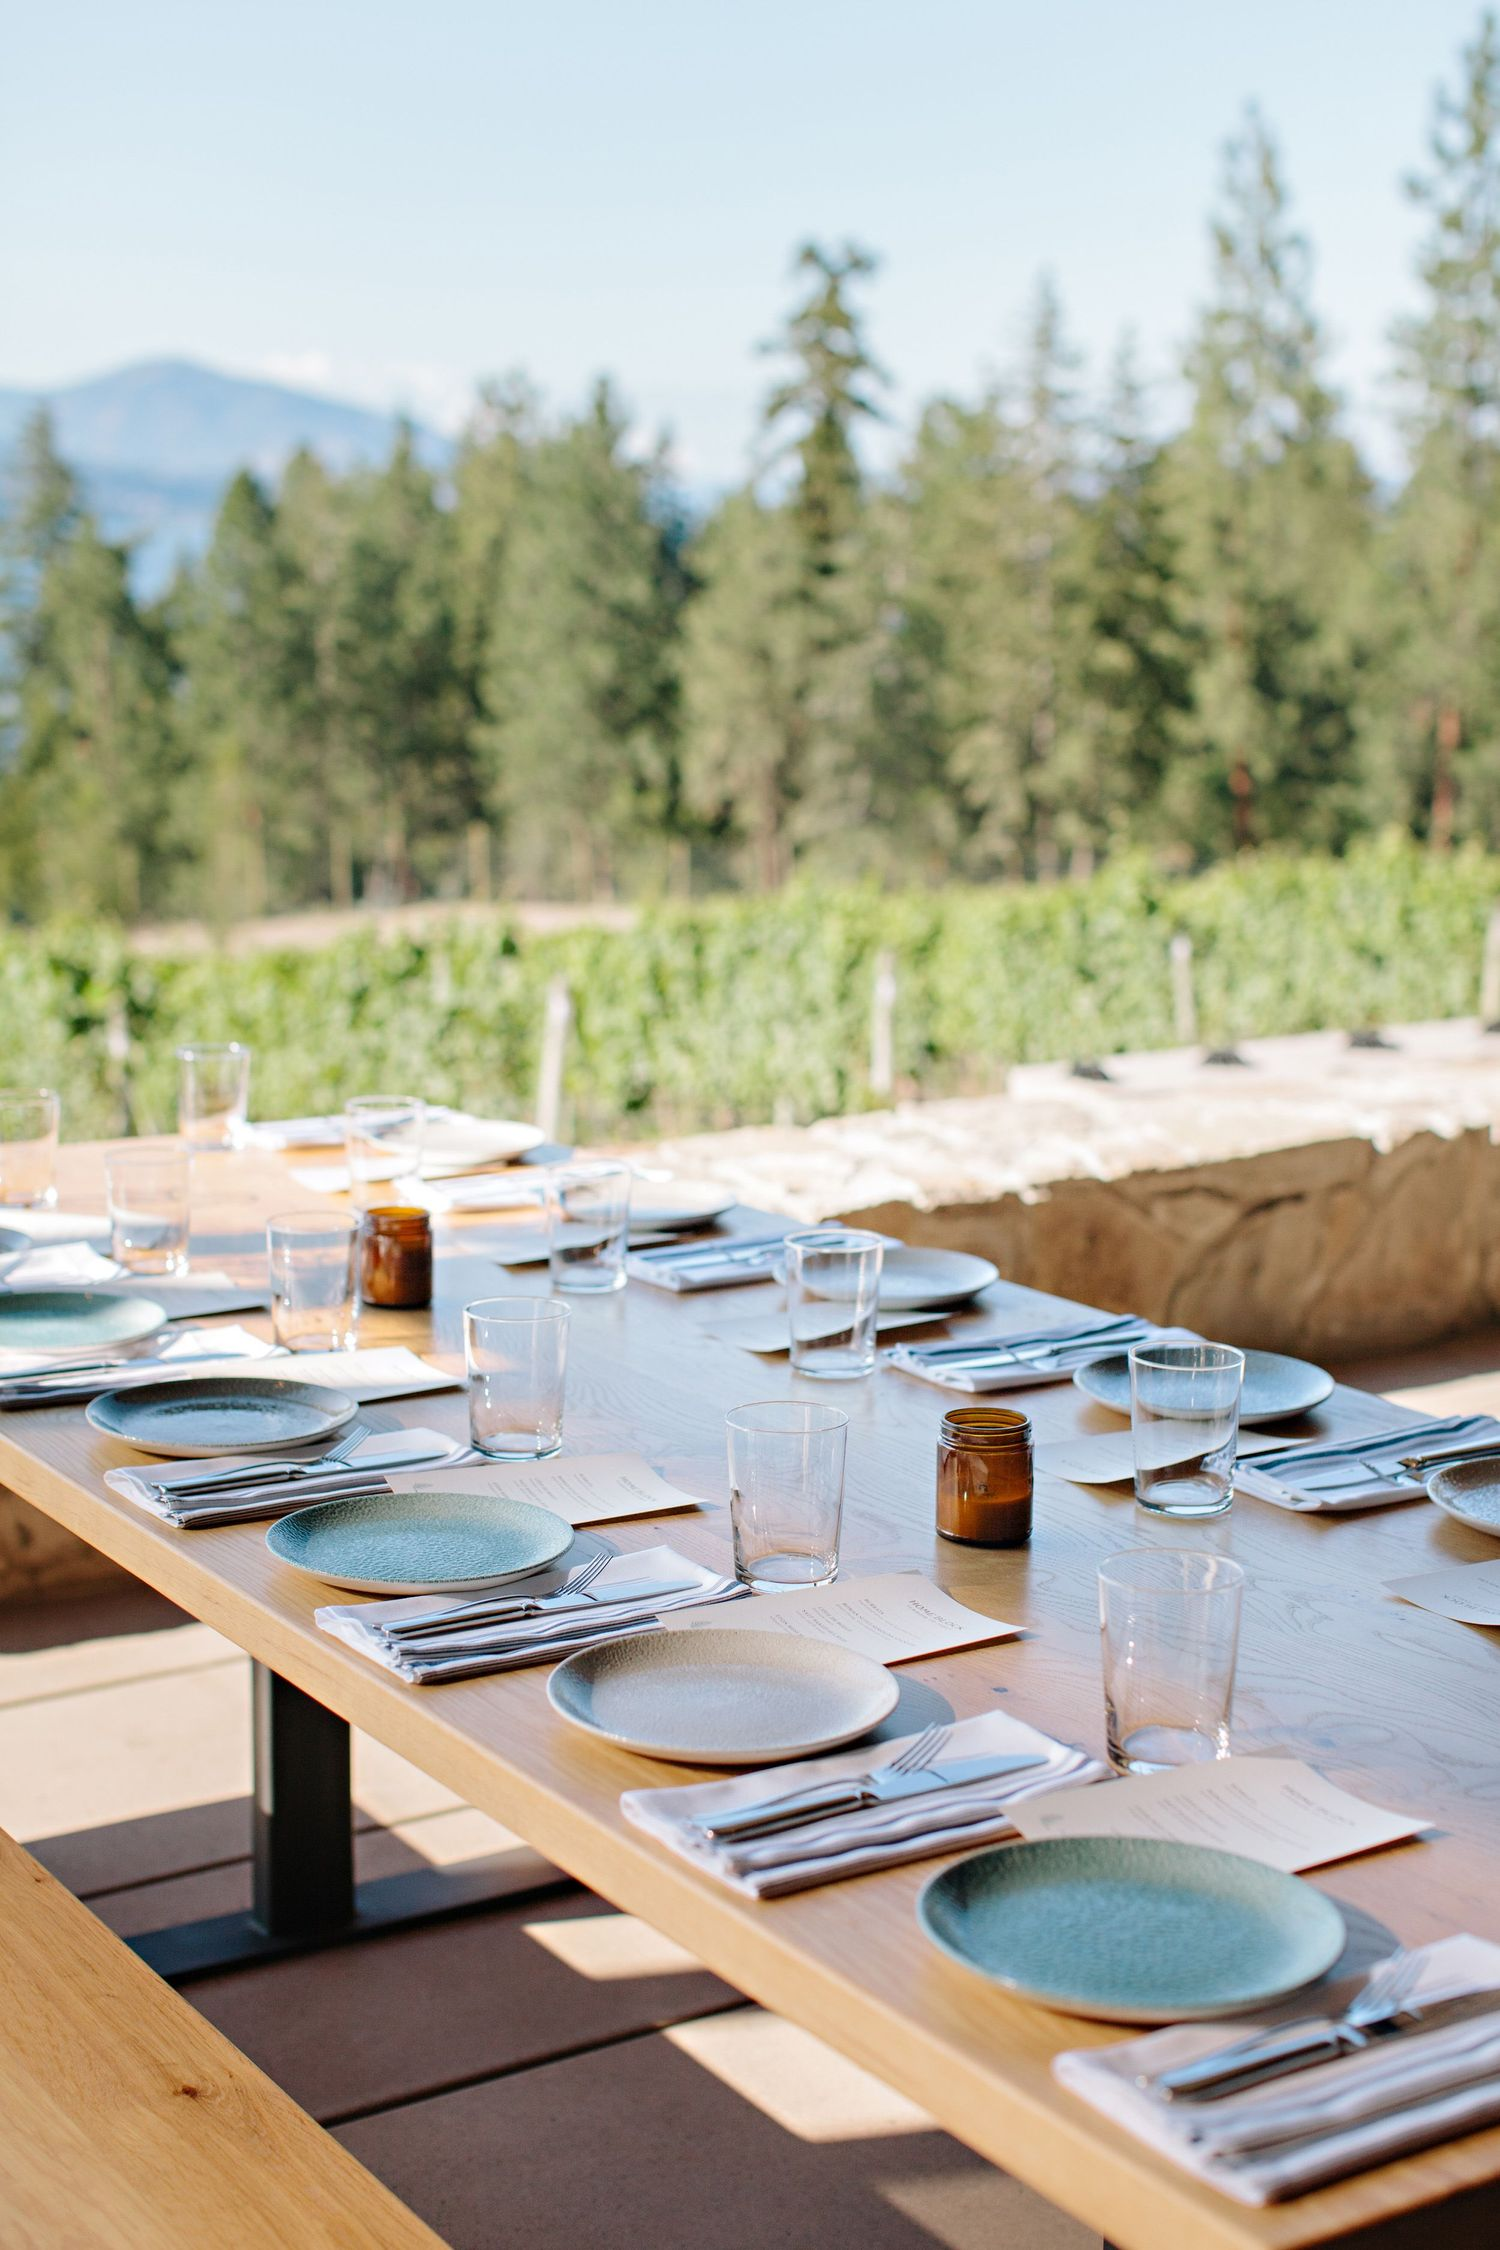 Home Block table setting with a vineyard view